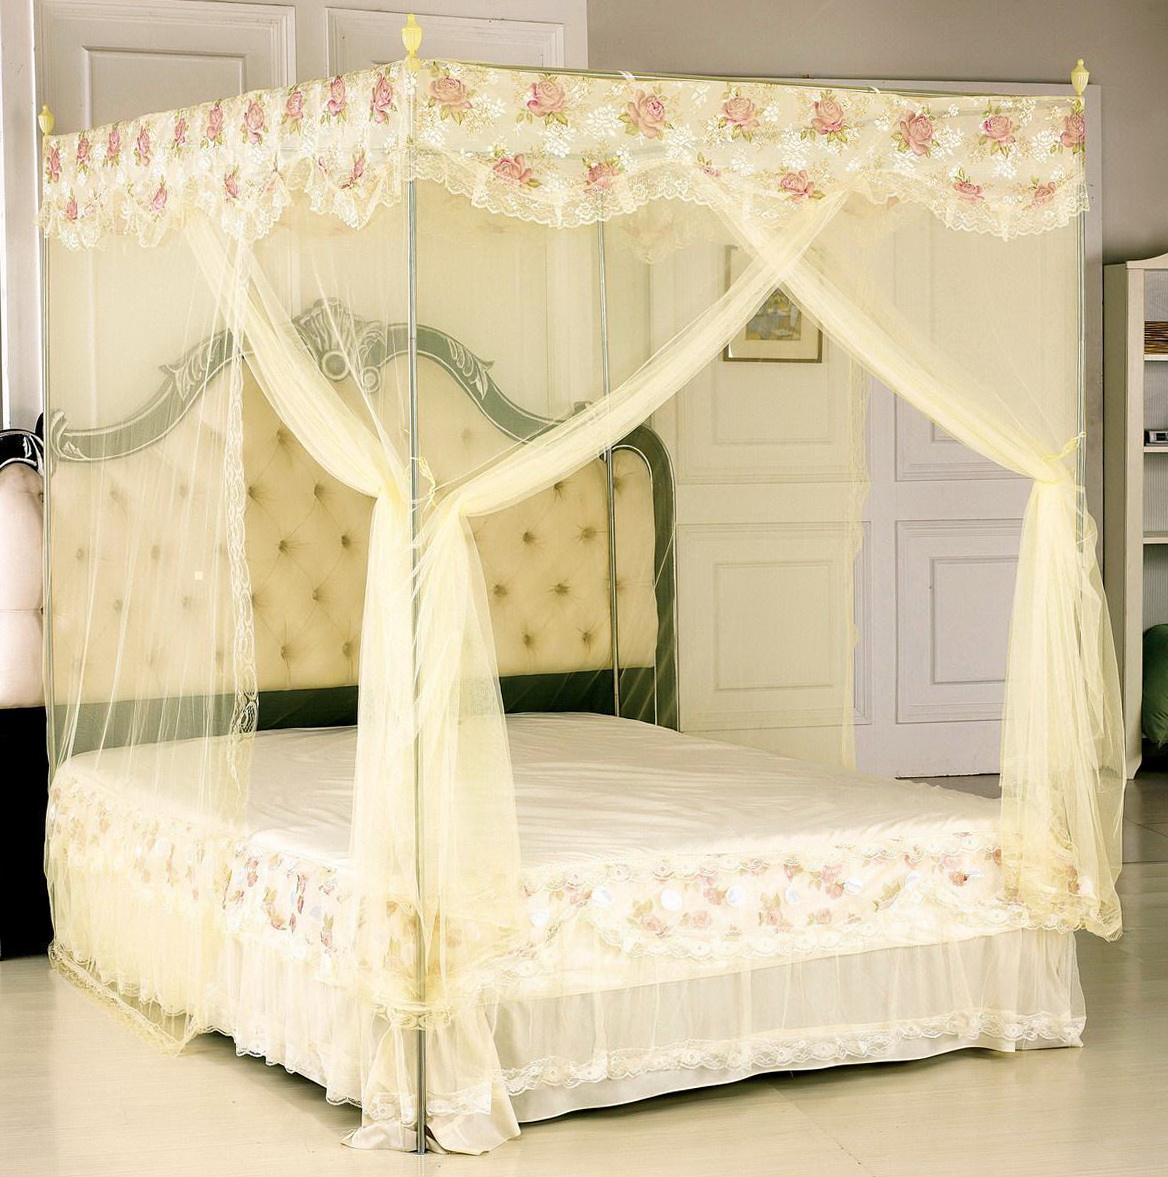 White Canopy Bed Curtains